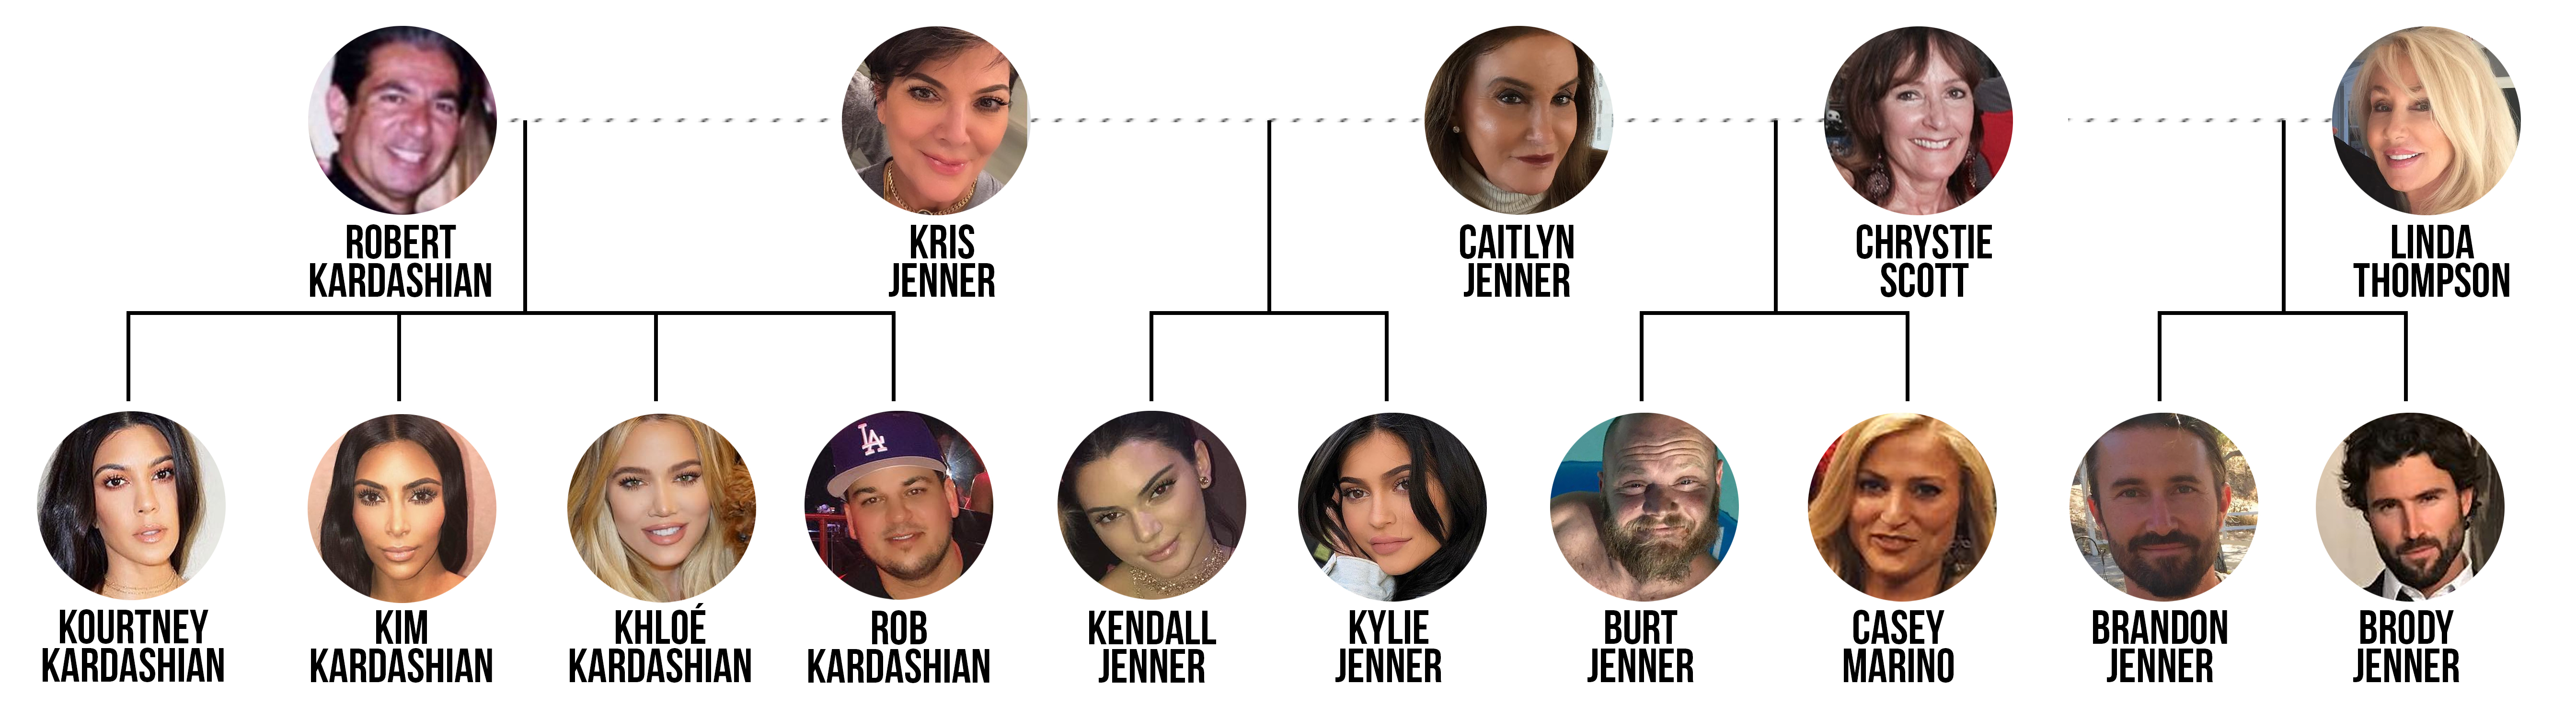 picture of a family tree